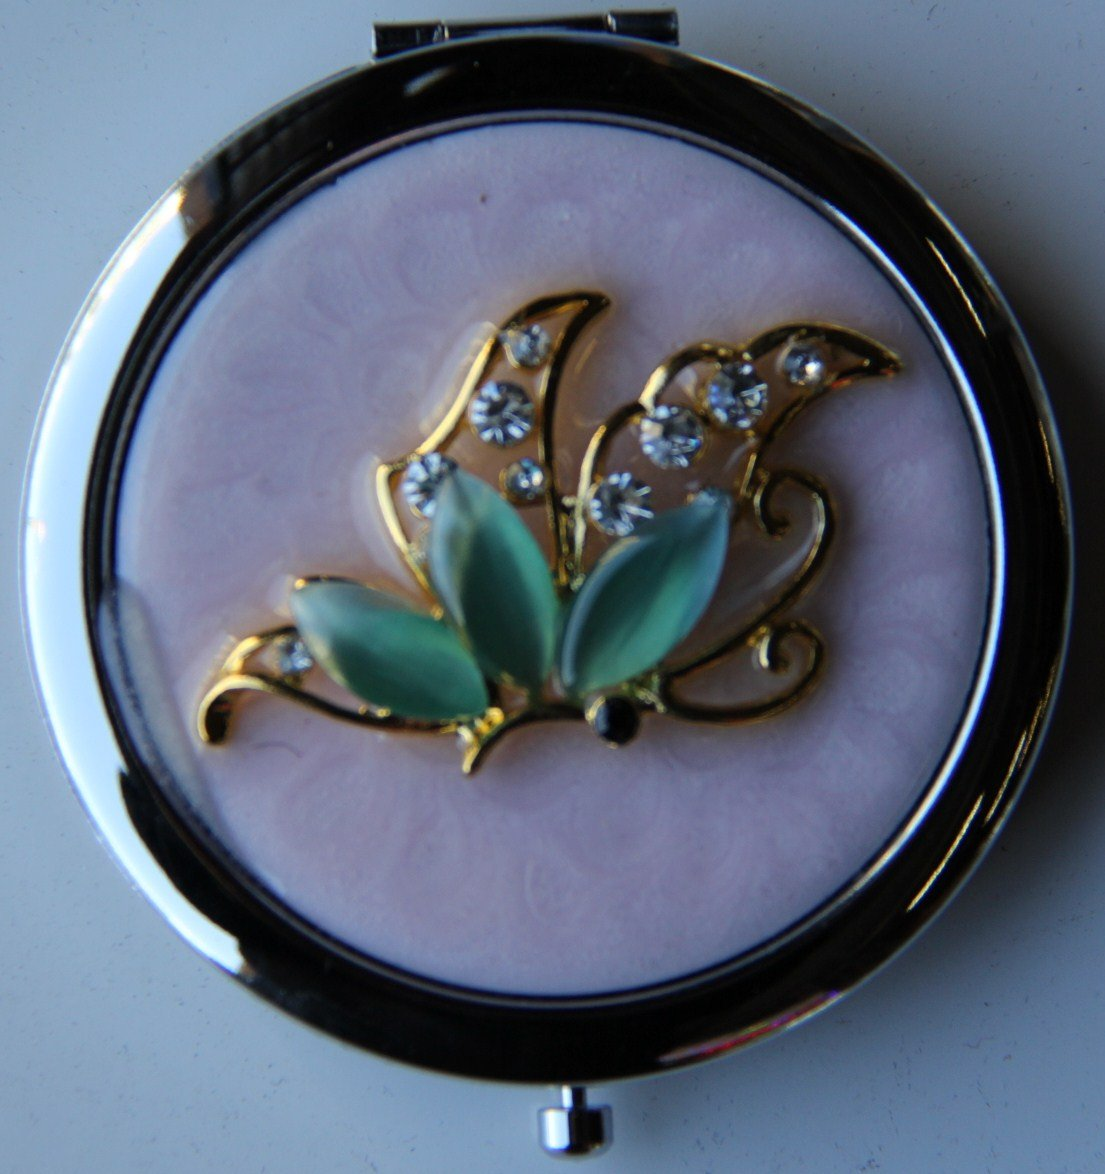 Purse Handbag Double Compact Cosmetic Mirror – Green Jeweled Butterfly